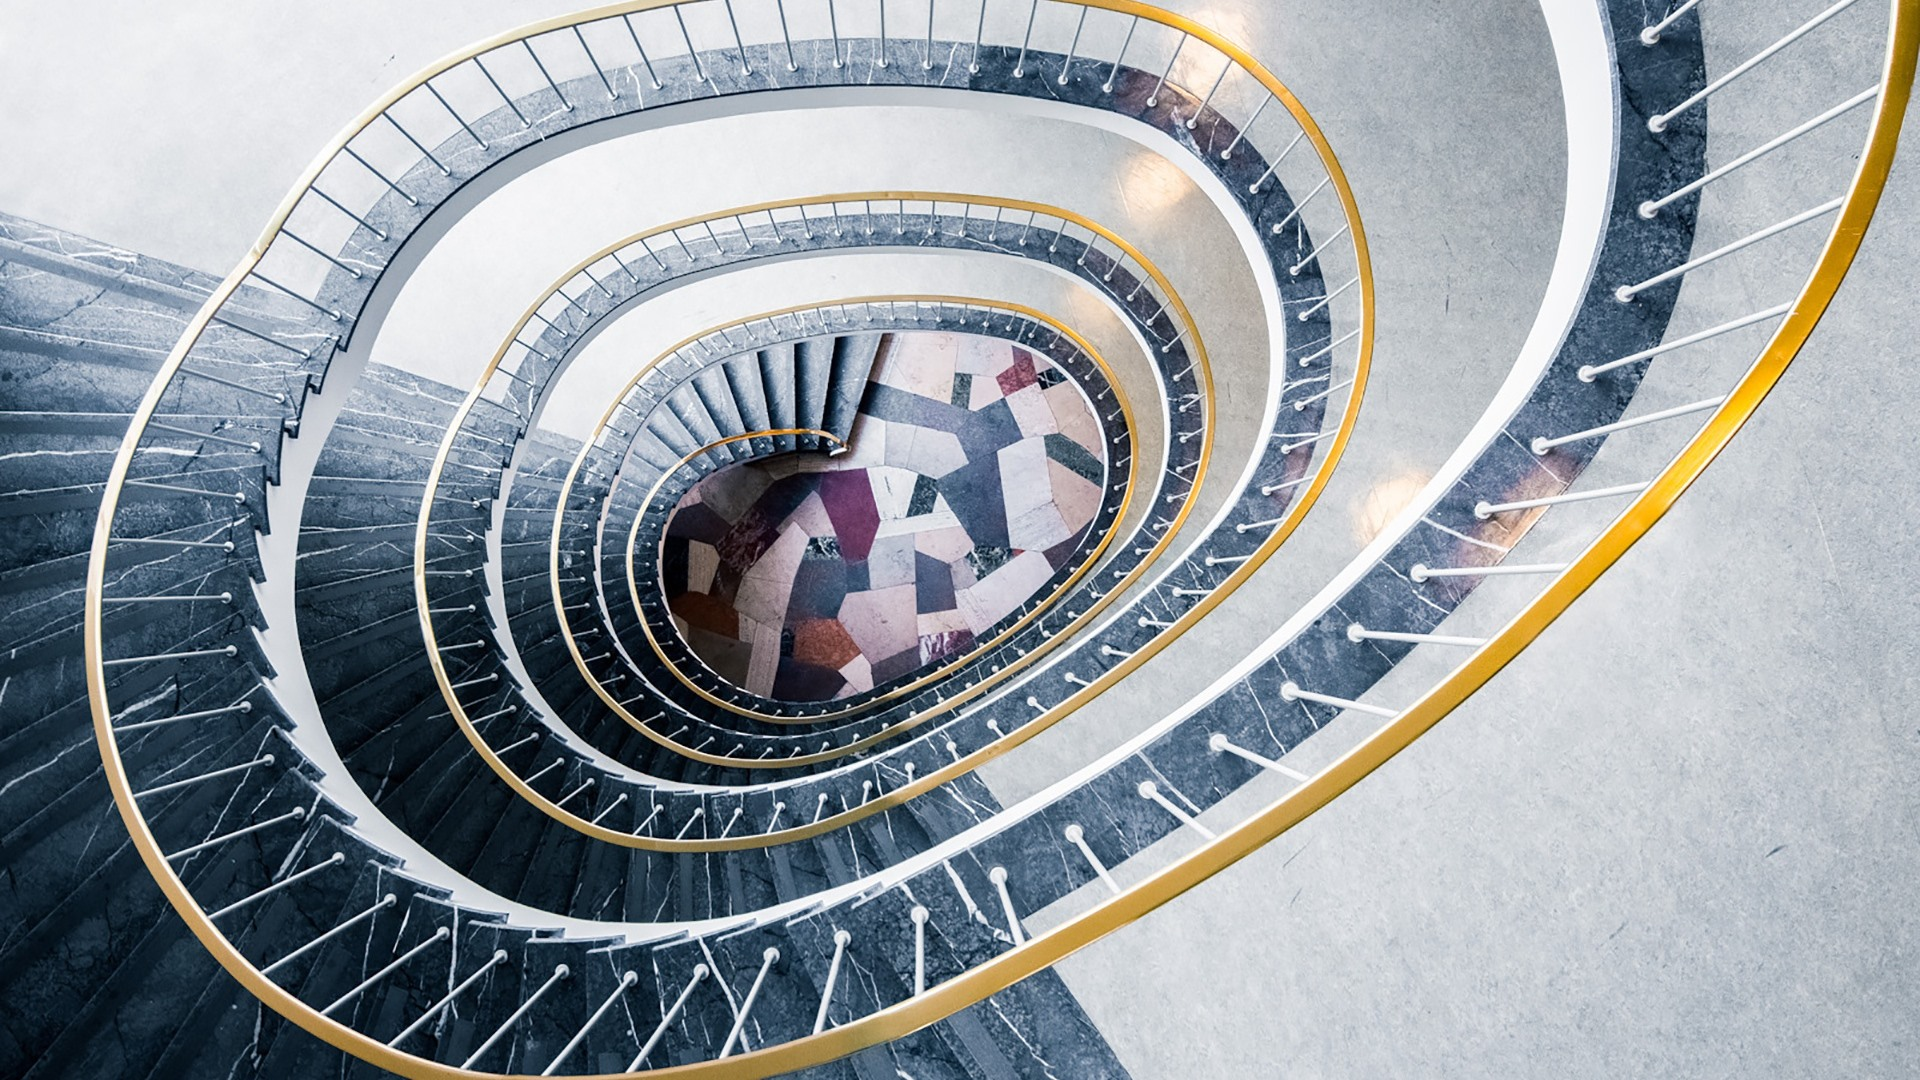 Wallpaper Stairs Handrail Spiral 1920x1200 Hd Picture Image